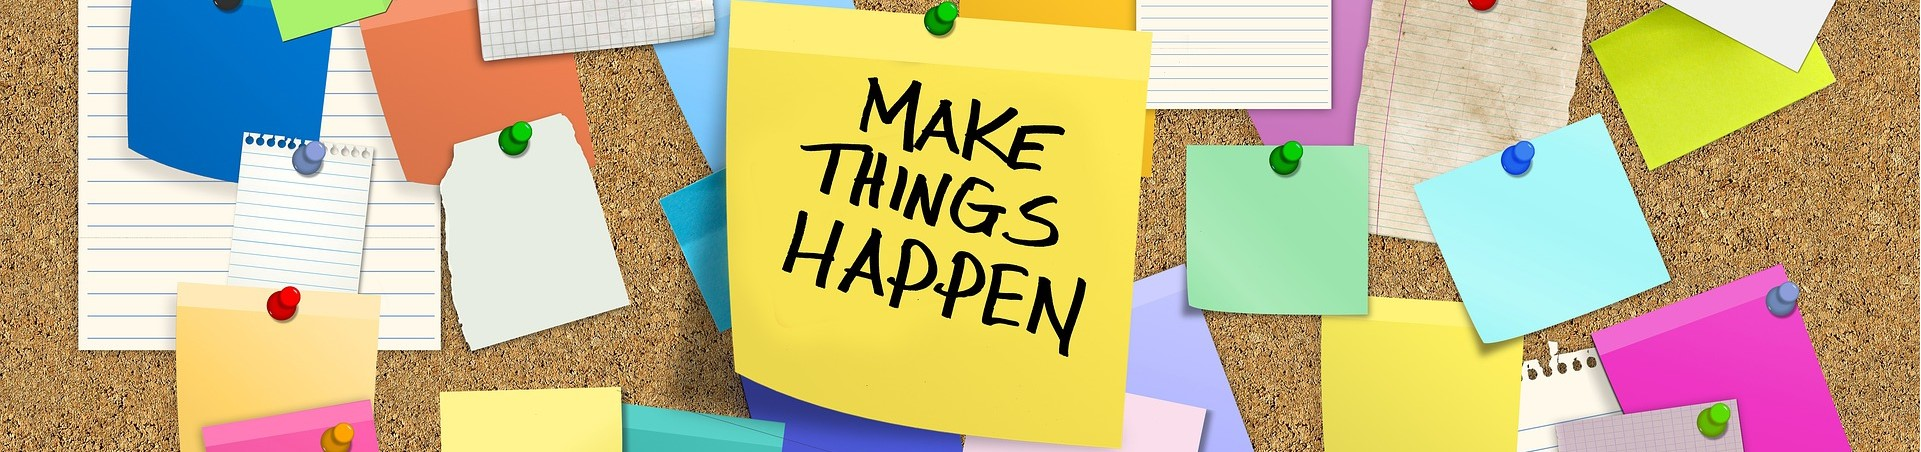 Make Things Happen on a Post-It